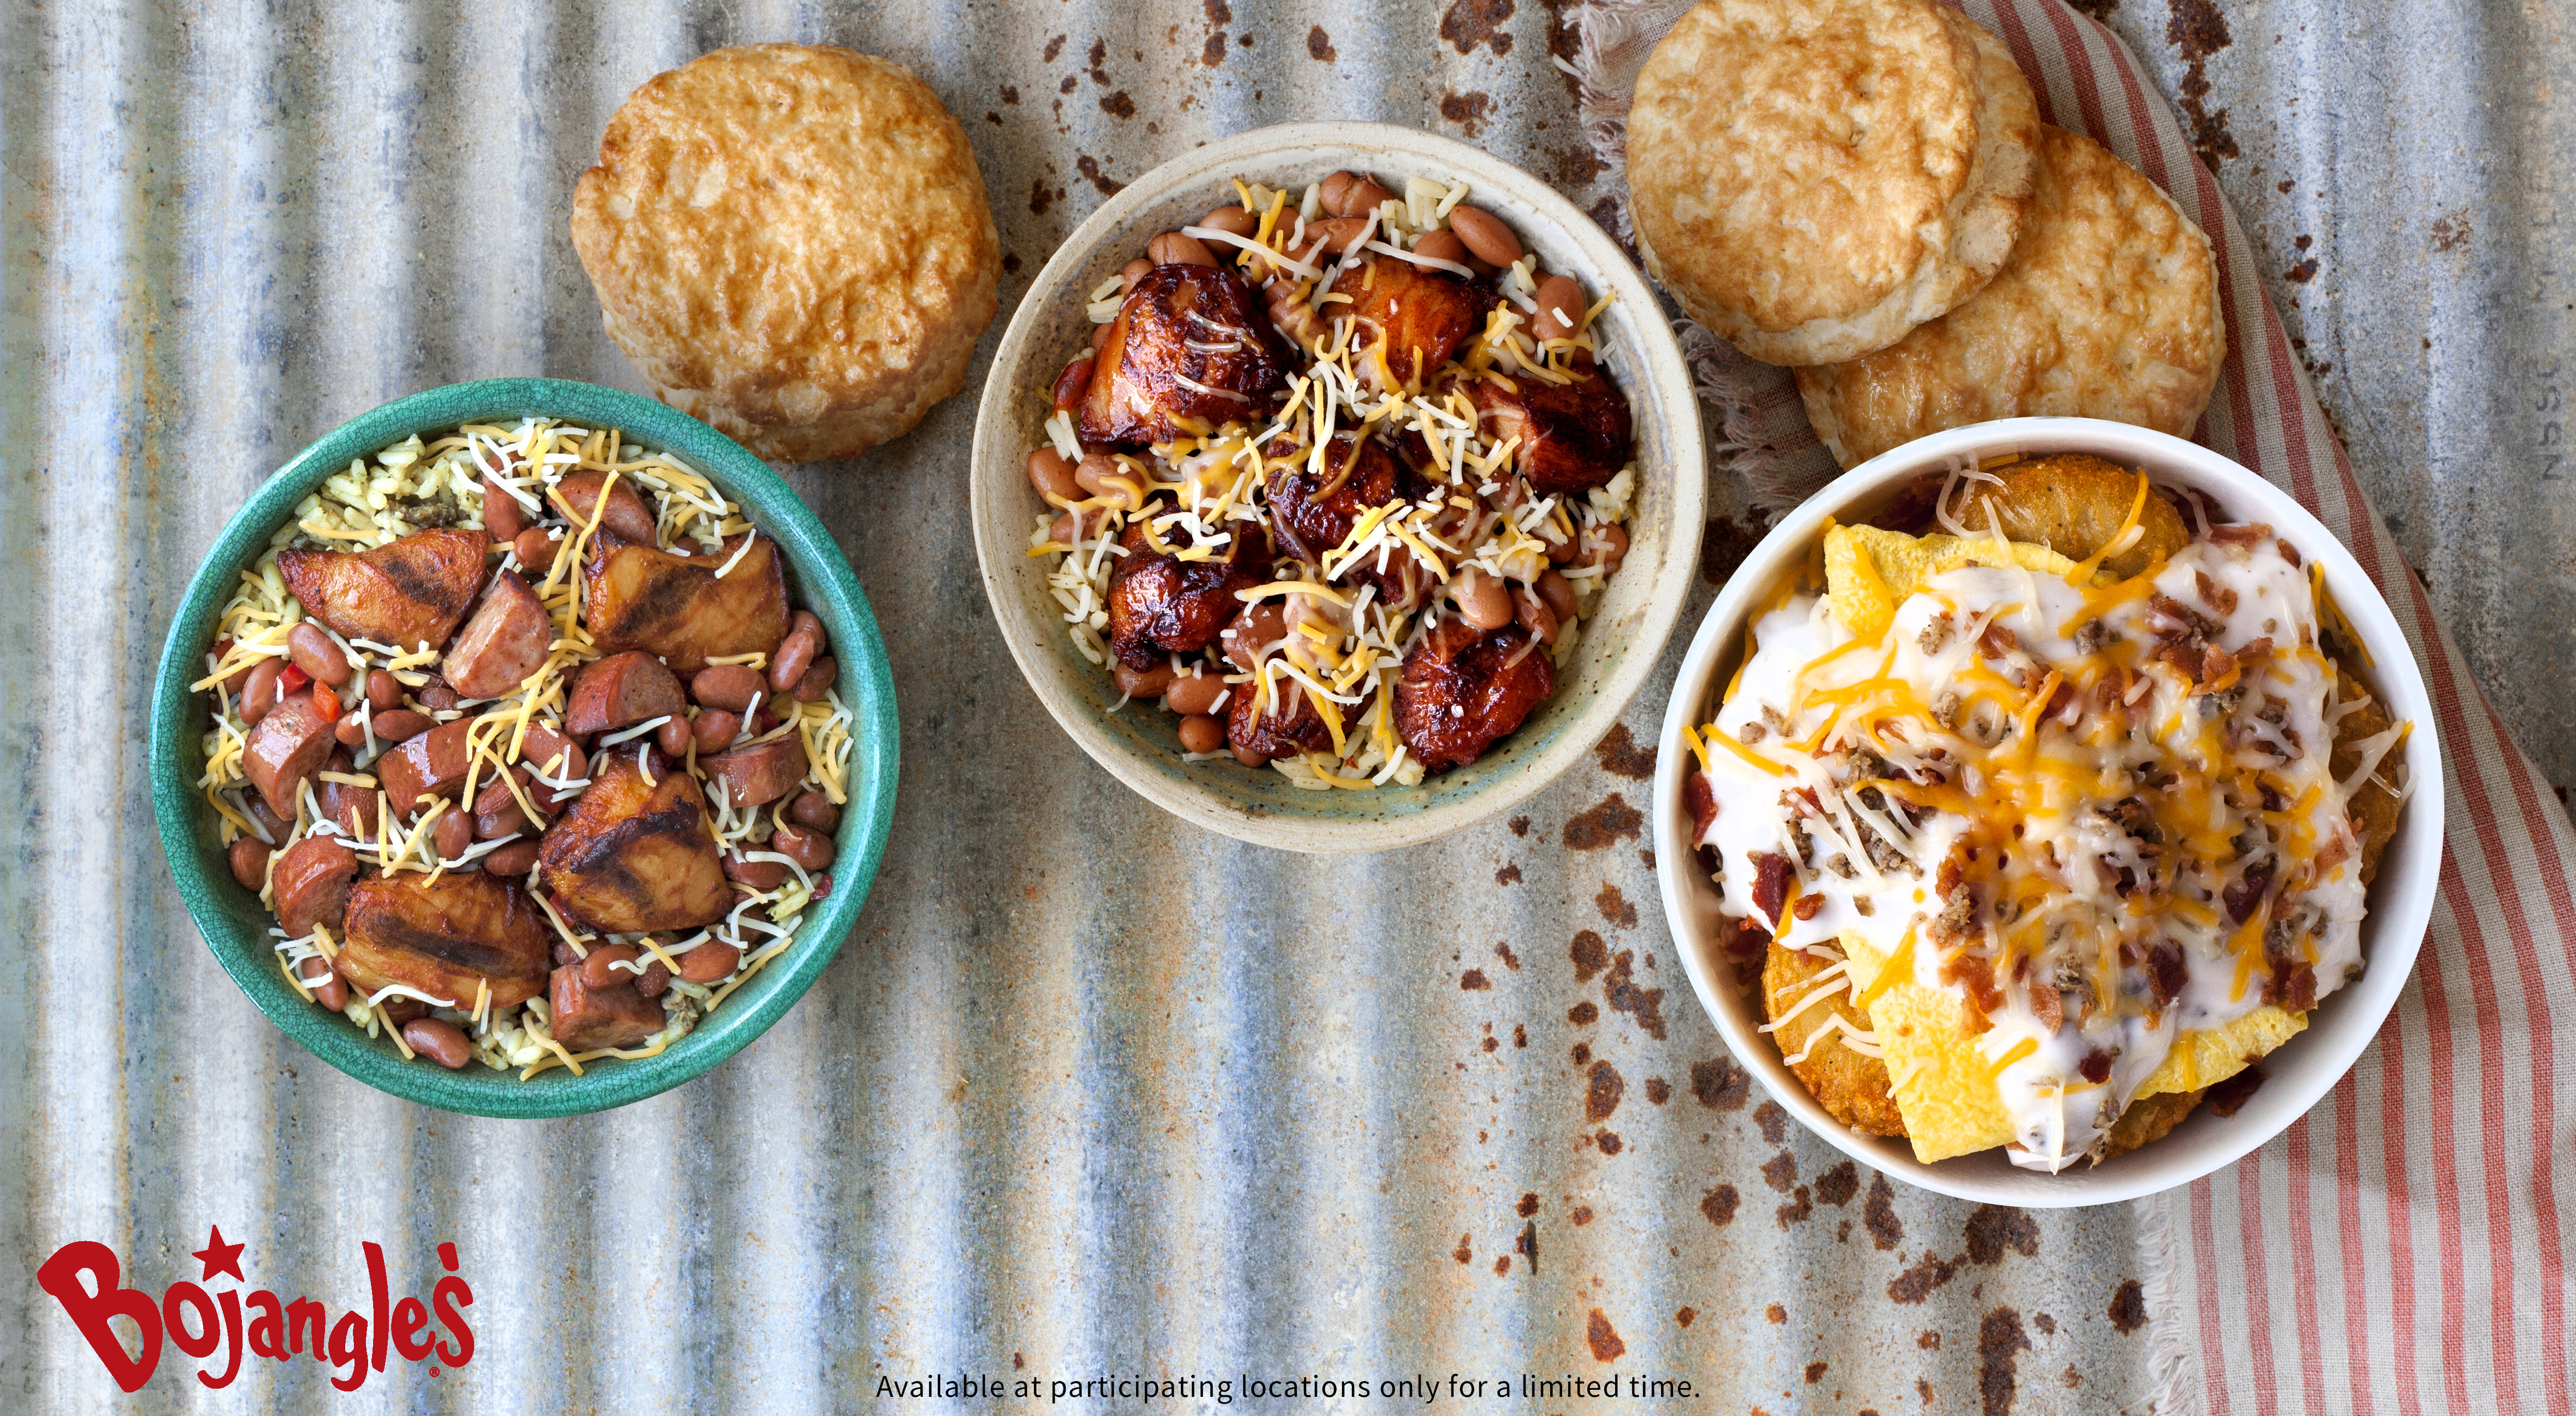 running on empty? fill up with a hearty bojangles'® bowl | business wire